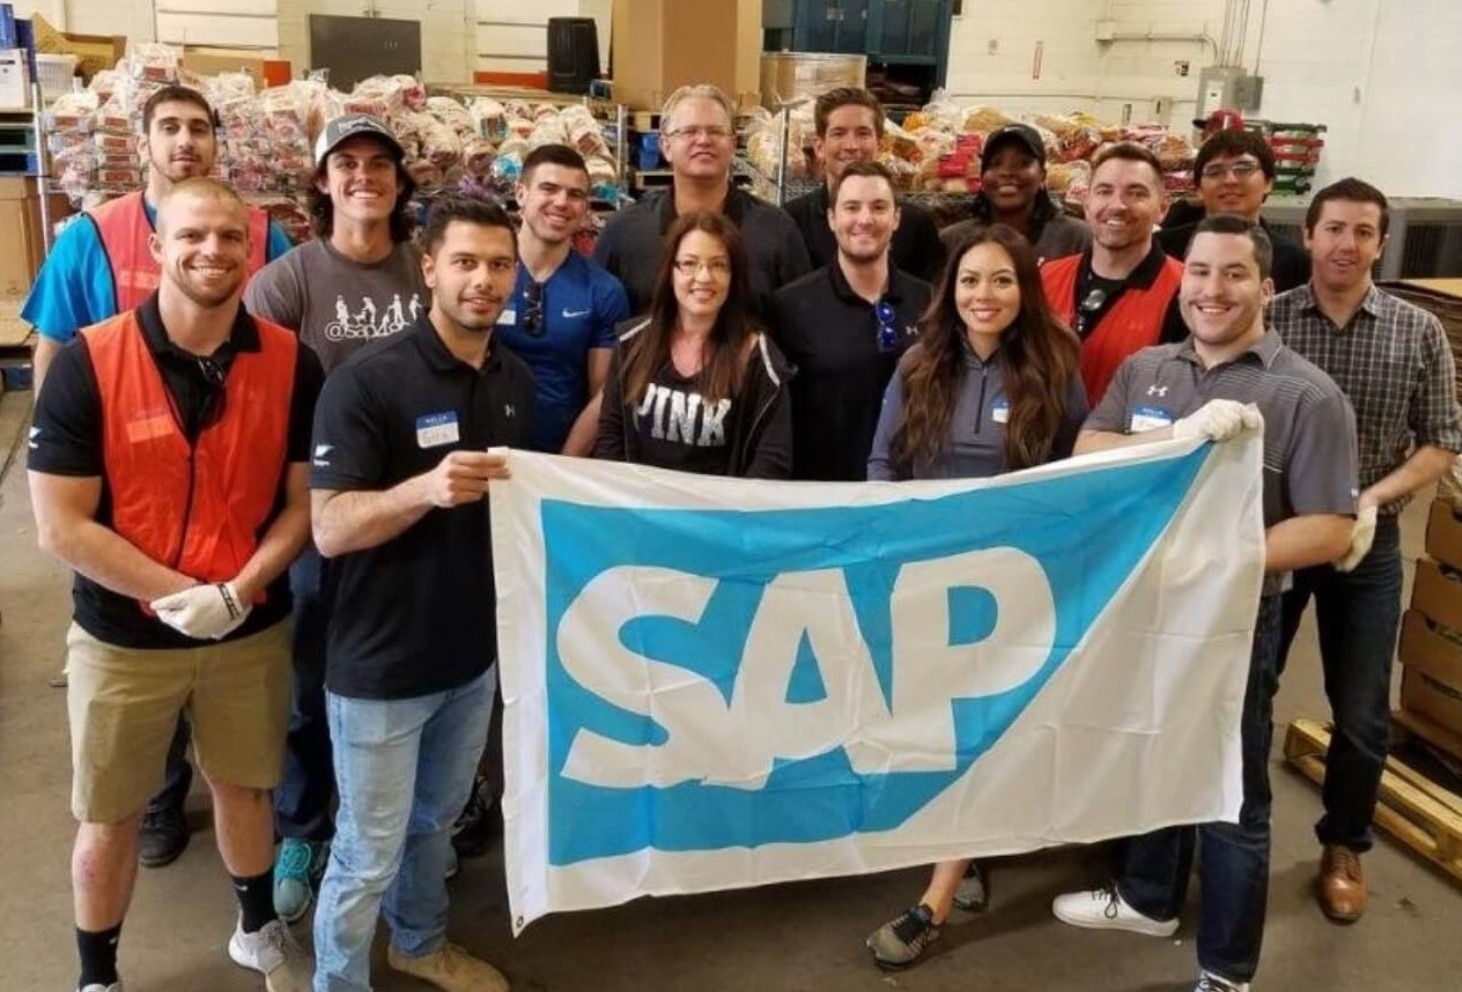 FROM DELCO: Check Out Where Fortune Ranks SAP Among the 50 Best Workplaces in Technology